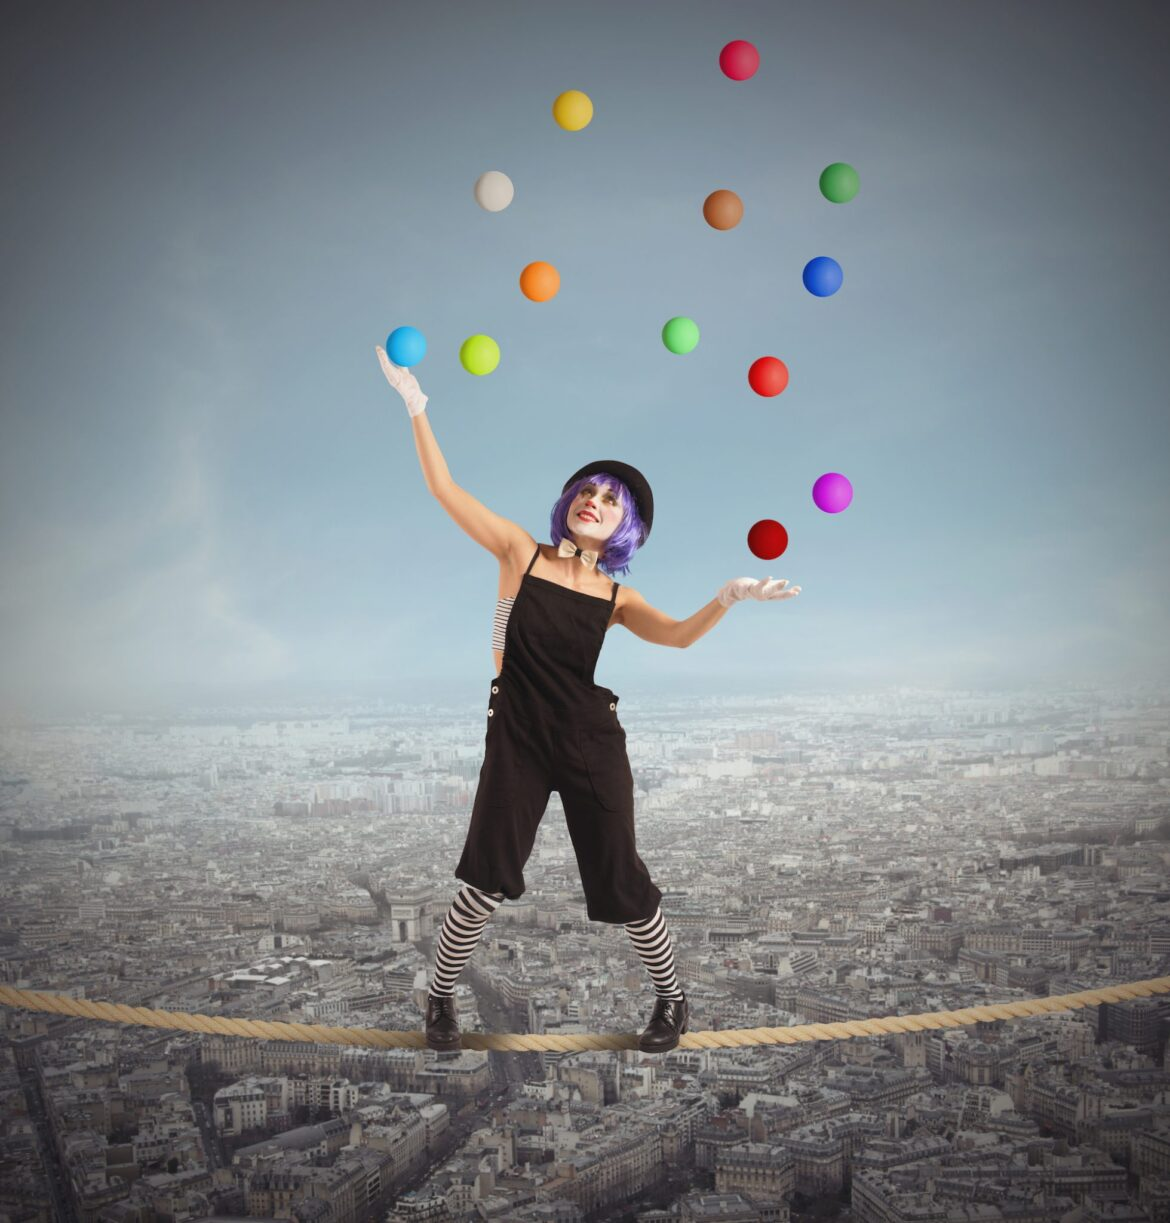 Tough decisions: juggling strategic choices